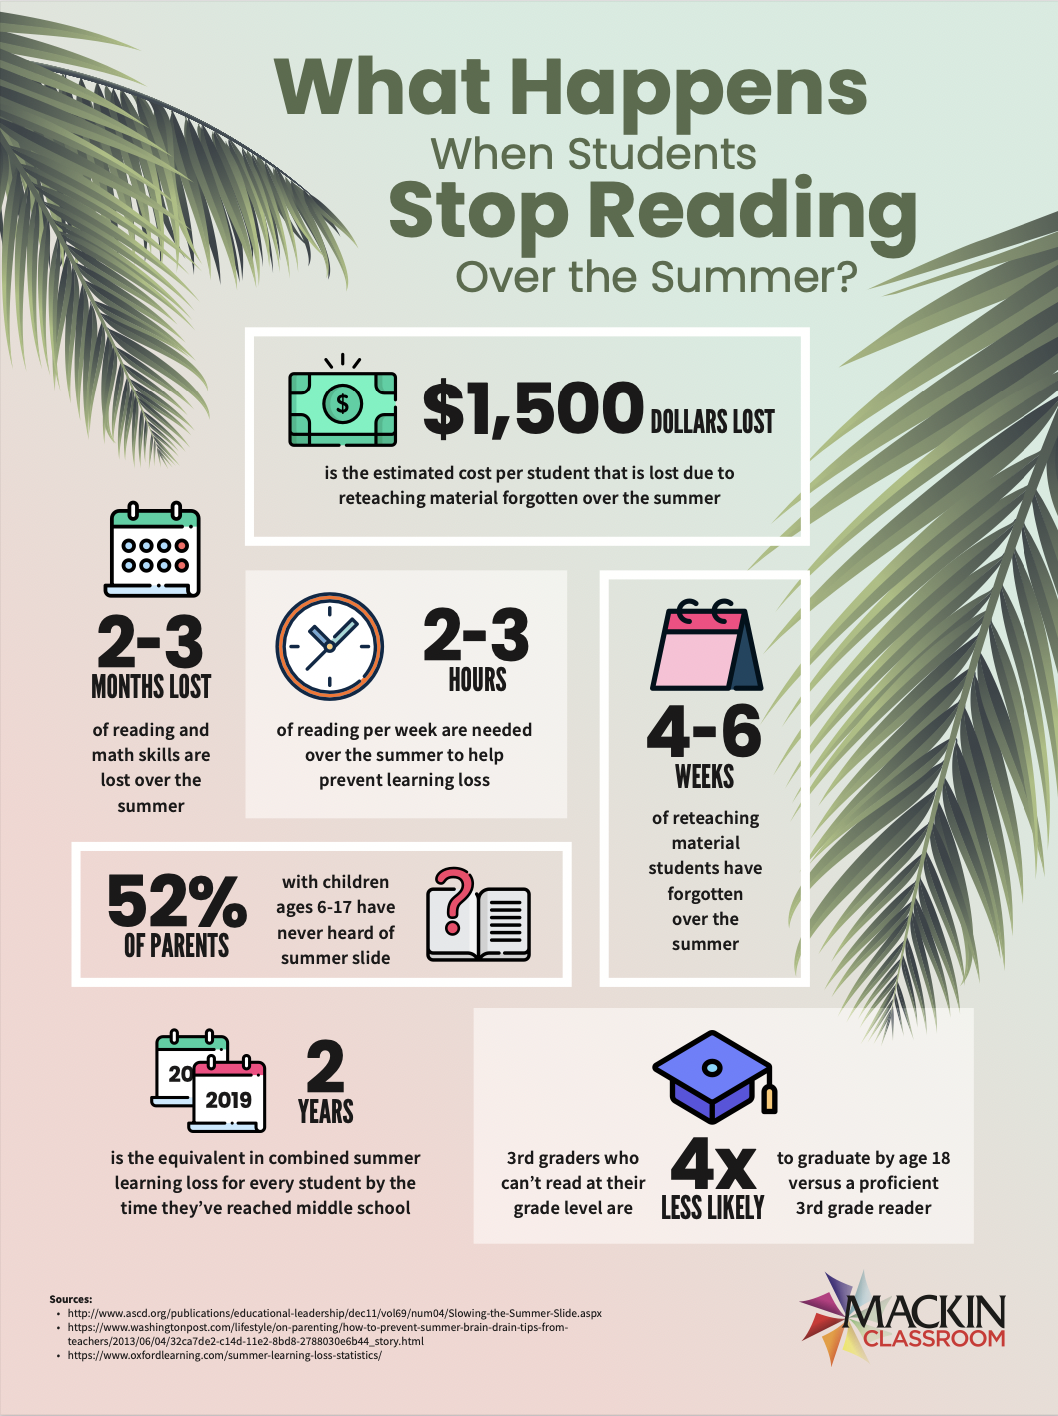 What happens when students stop reading over the summer?